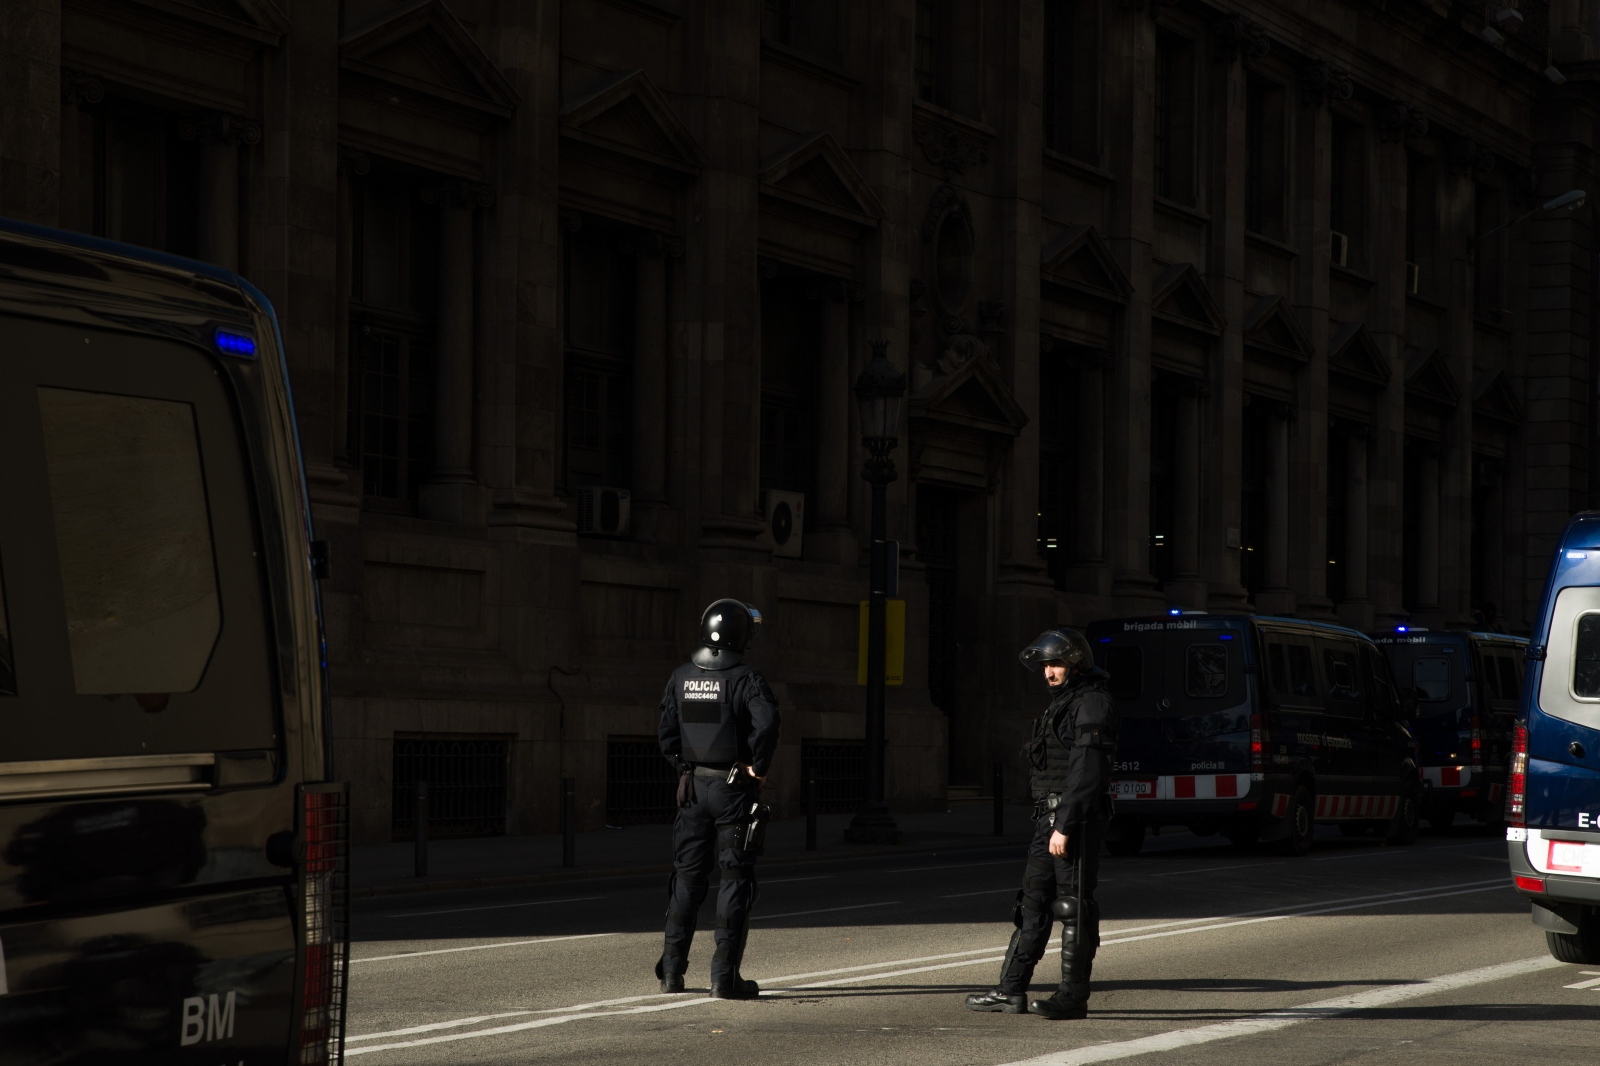 Policemen guard the meeting of the Spanish cabinet in Via Laietana. The meeting that usually takes place in Madrid drew heavy protests from Catalan separatists. It was protected by around 10.000 police forces of the Catalan as well as the Spanish national police that clashed on various occasions with protesters. According to the newspaper El País, at least 13 people were arrested. Barcelona, December 21, 2018.